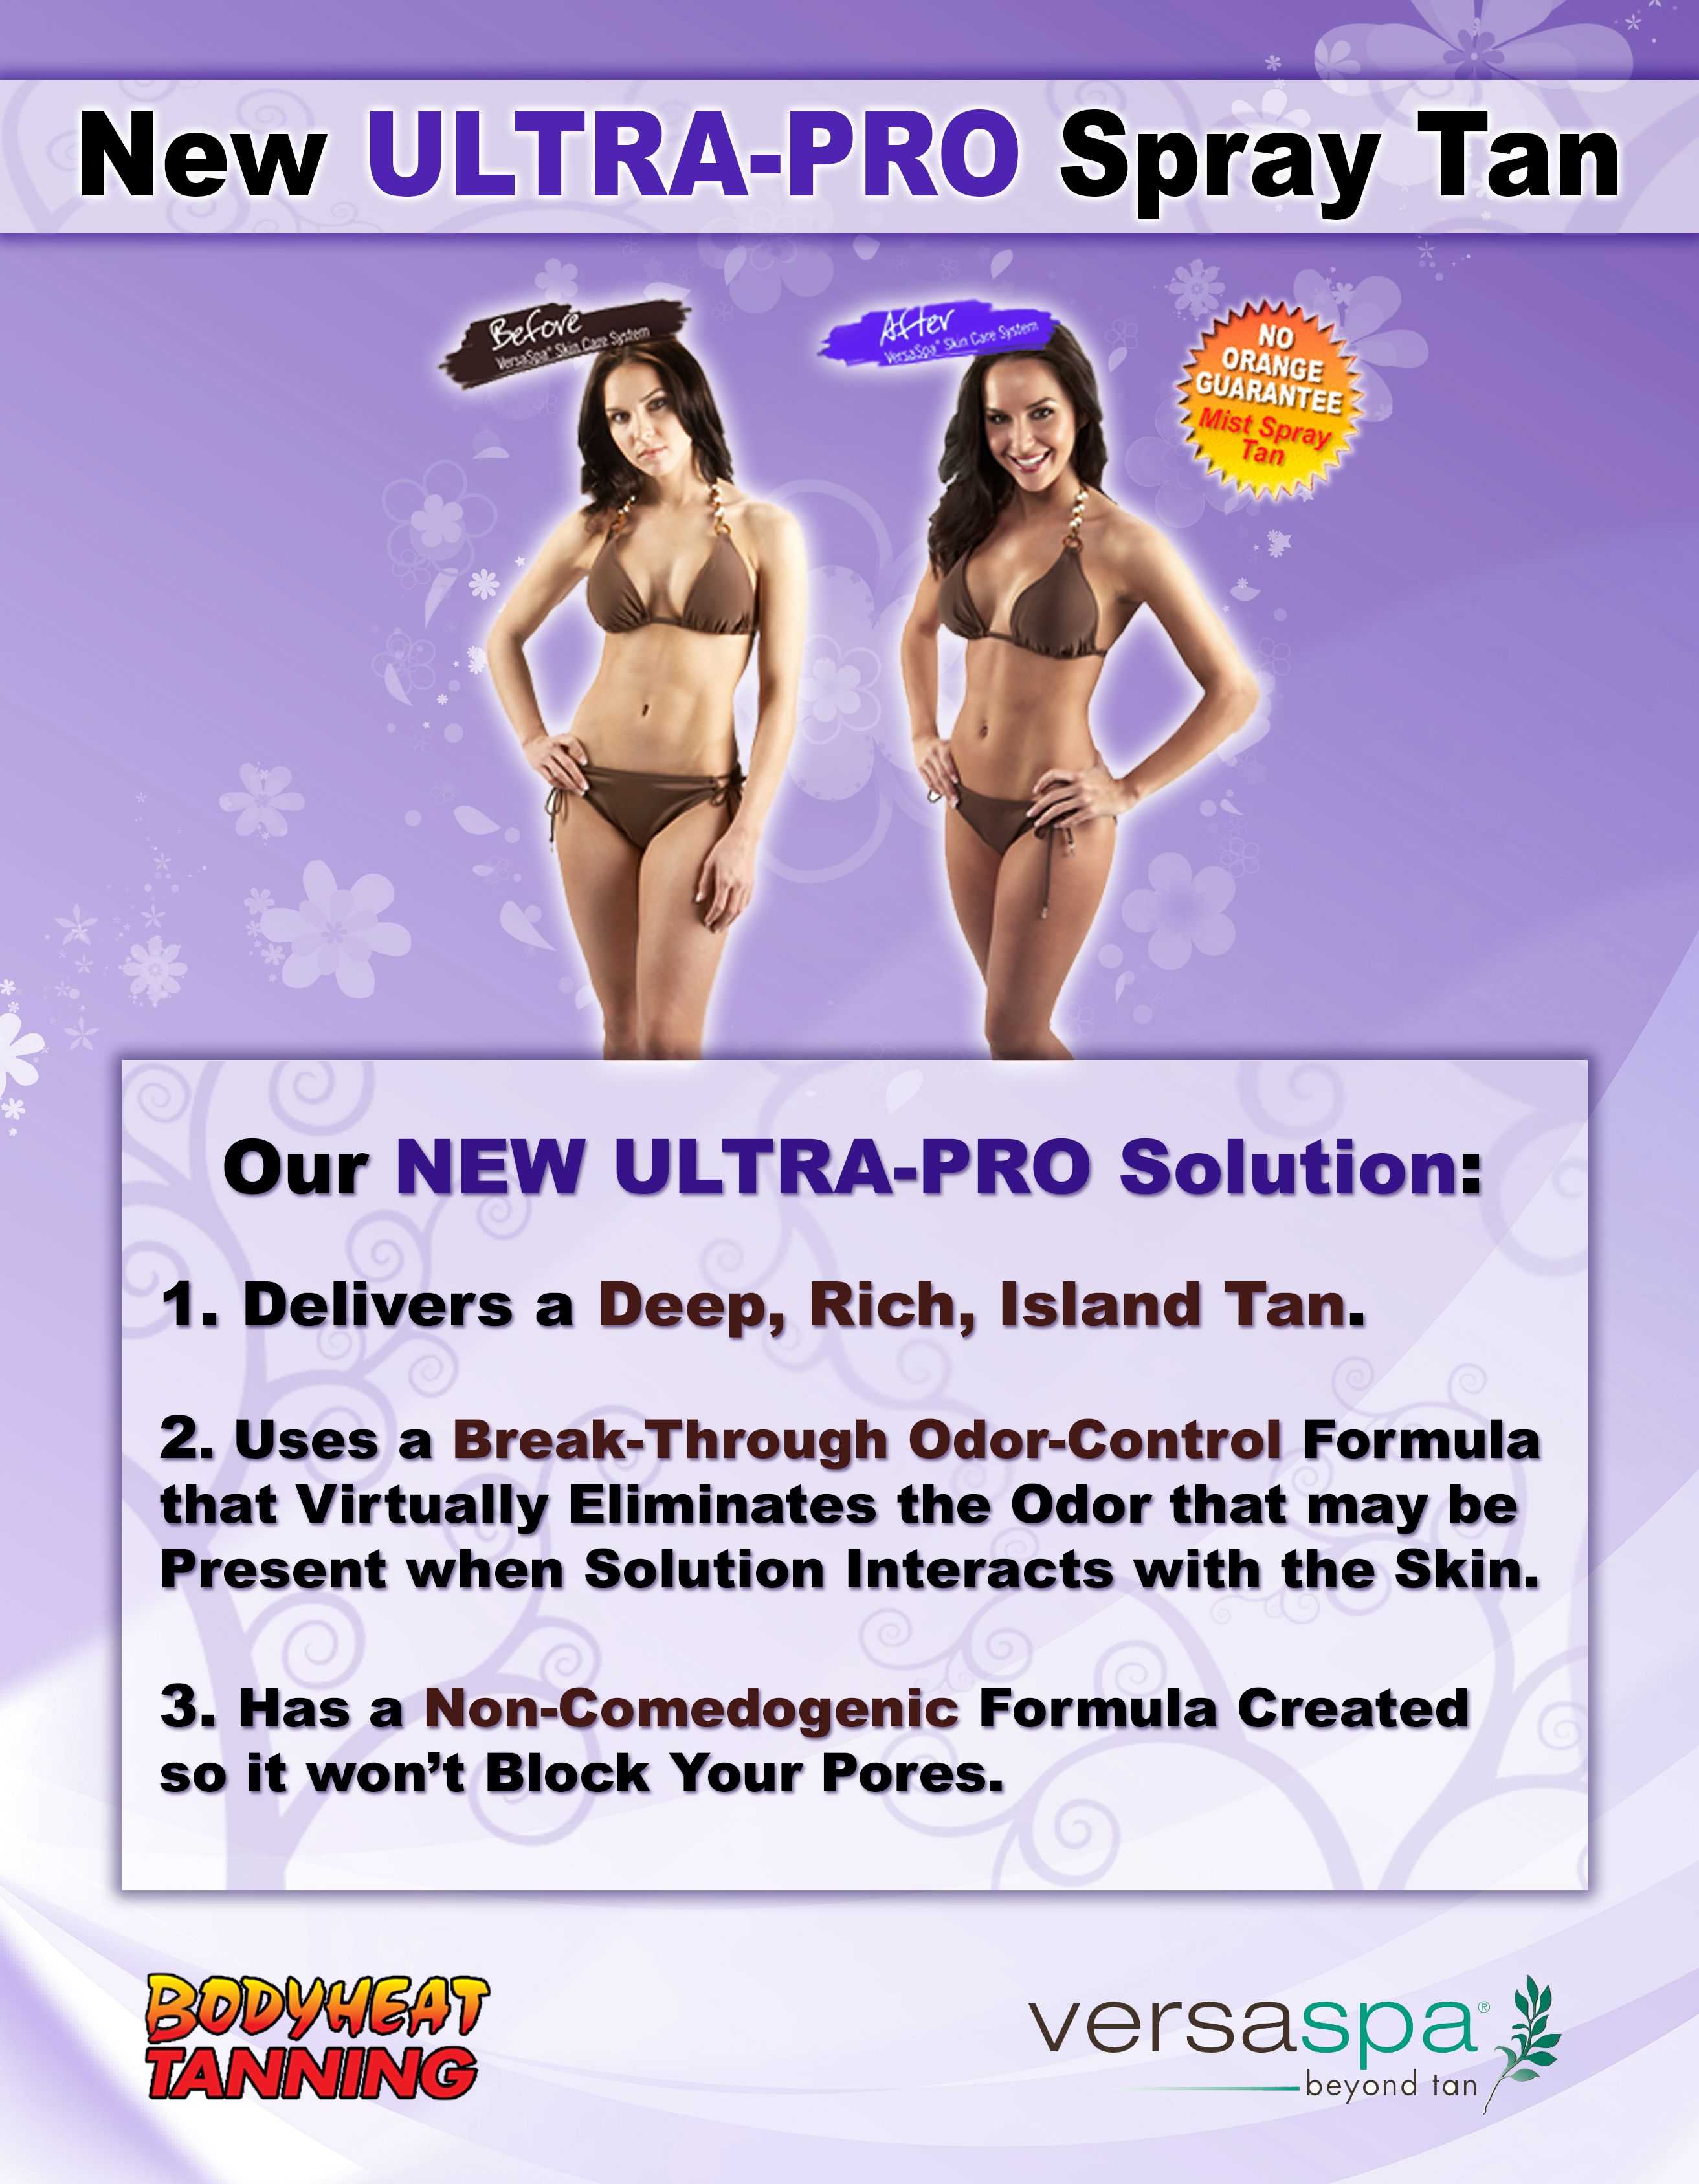 Bodyheat Tanning Now Offers An Ultra Pro Spray Tan Solution From